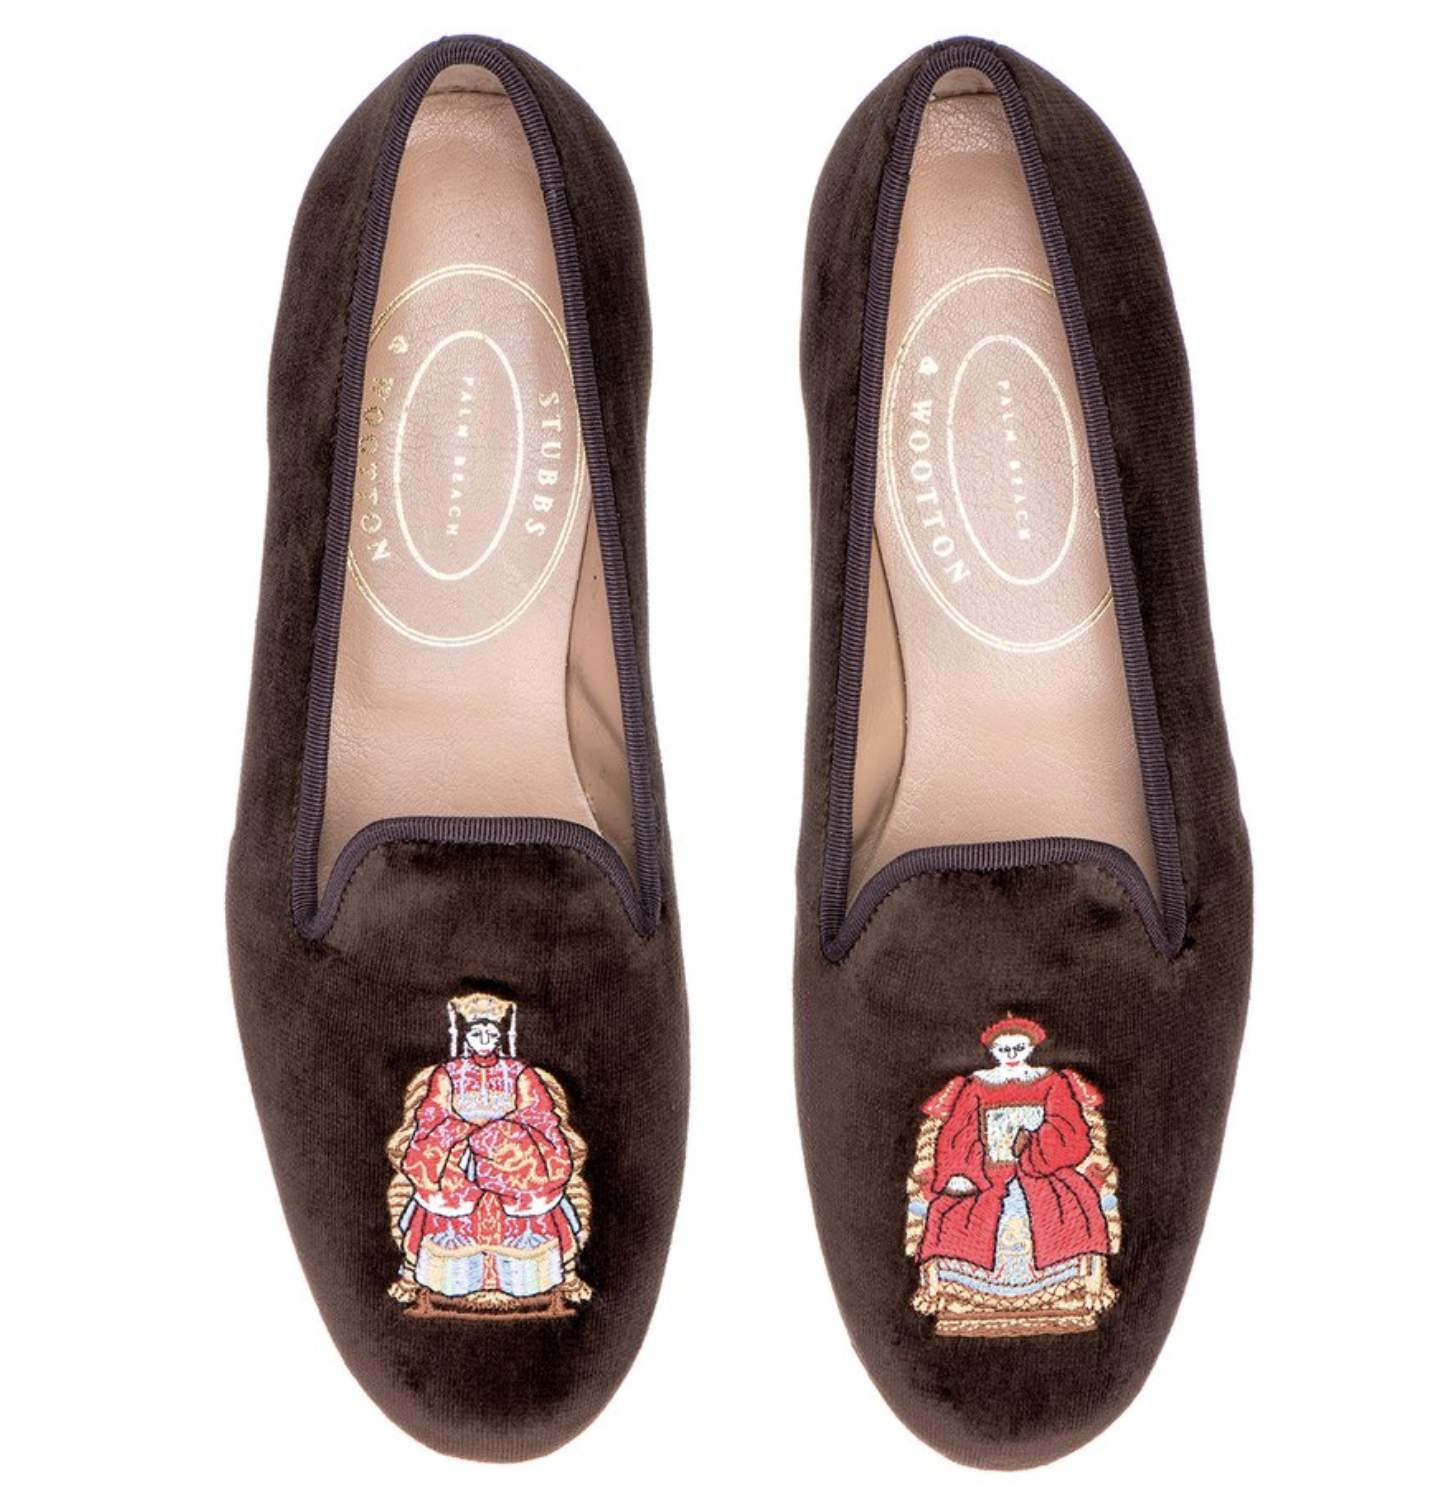 Stubbs and Wootton Chinoiserie Loafers 8